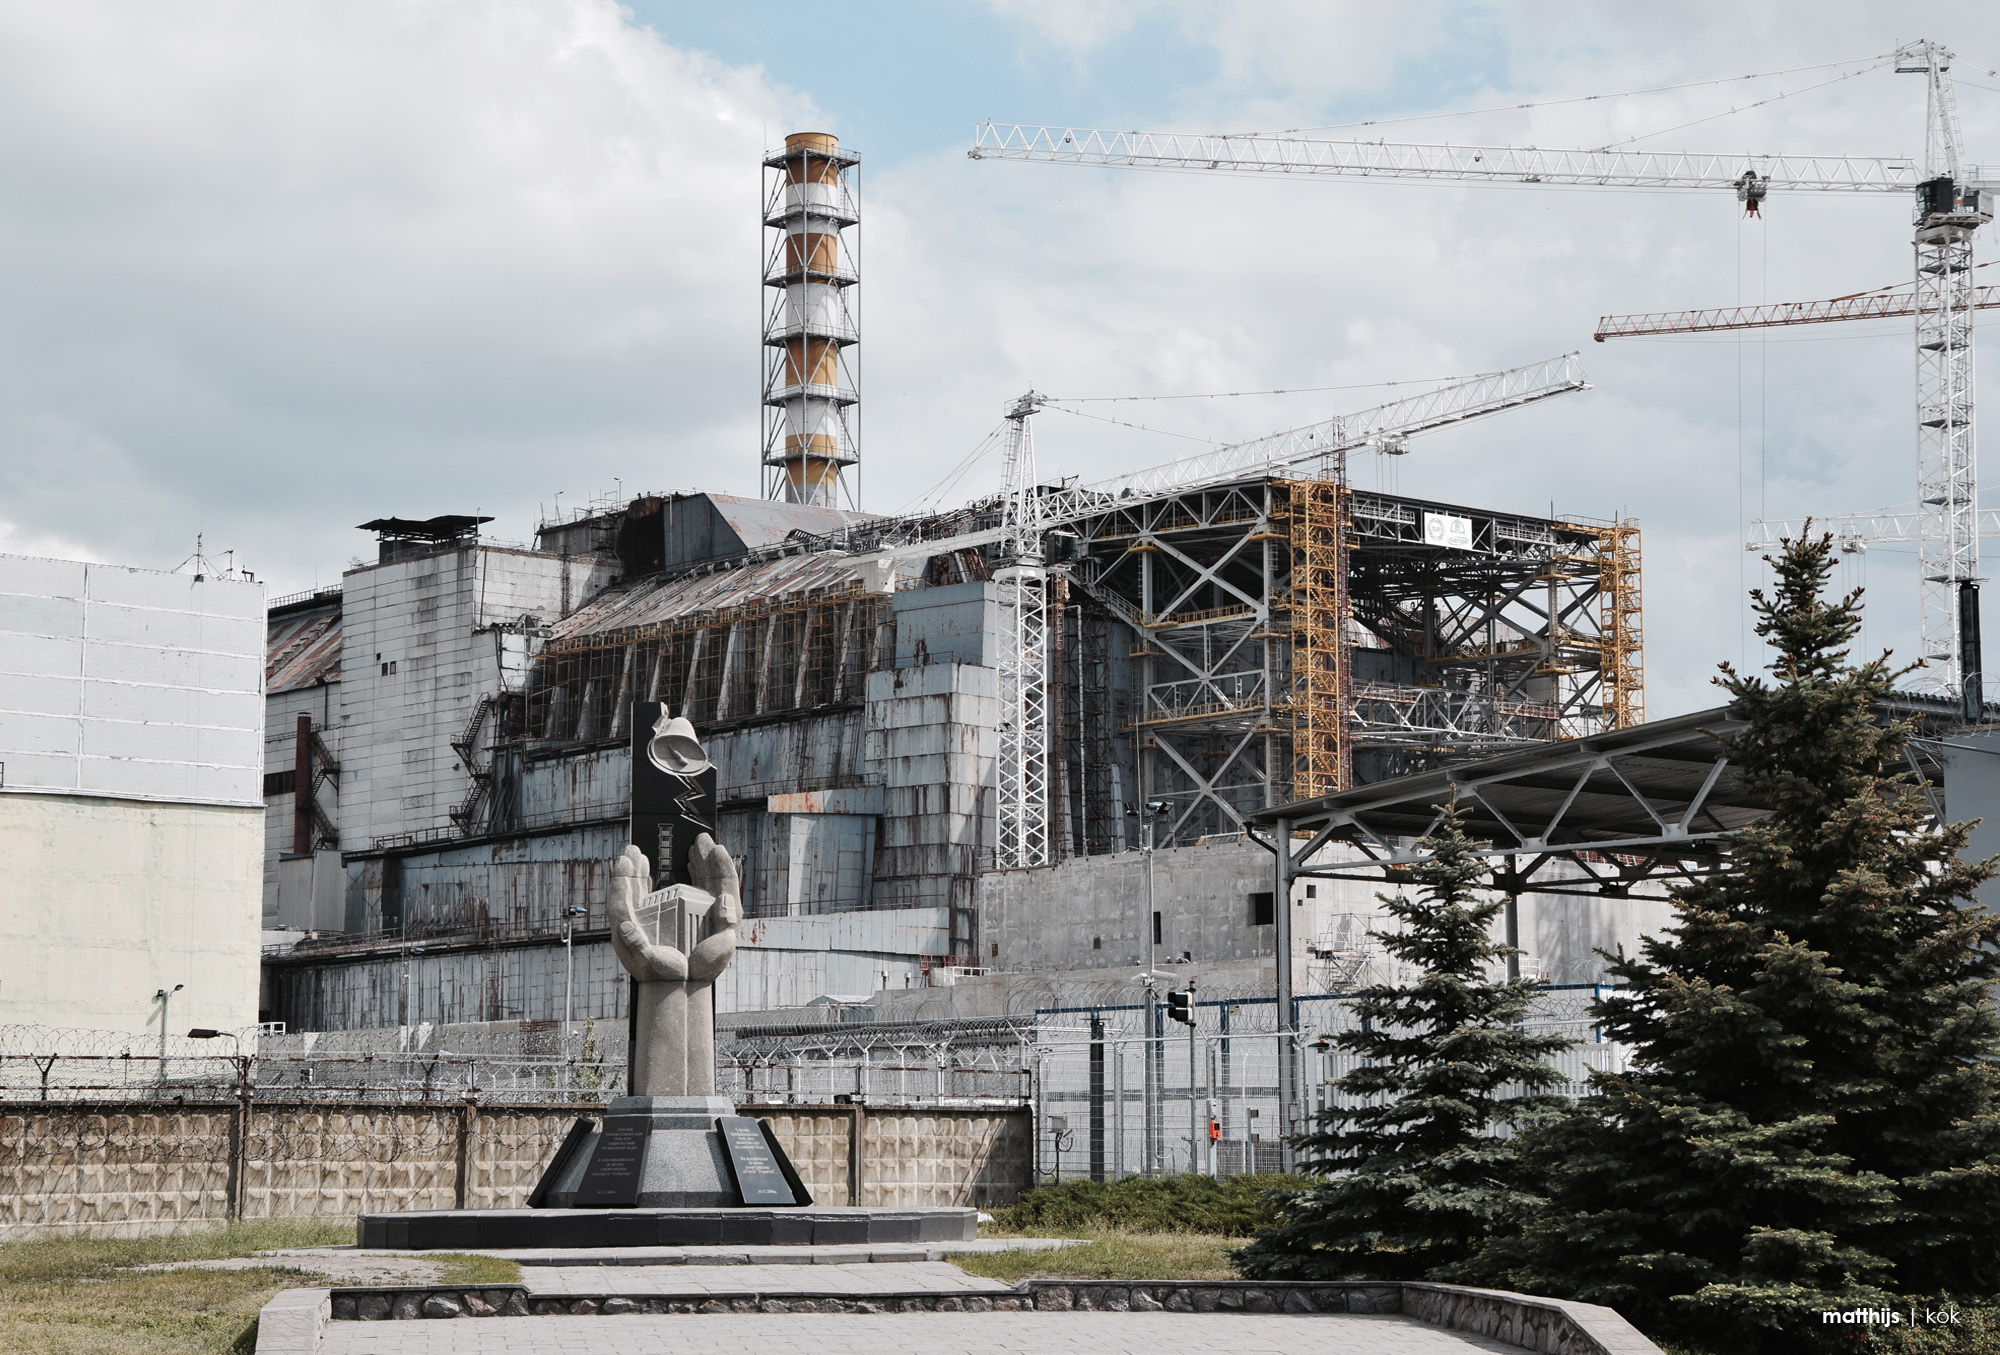 Sarcophagus over Reactor Number 4, Chernobyl | Photo by Matthijs Kok